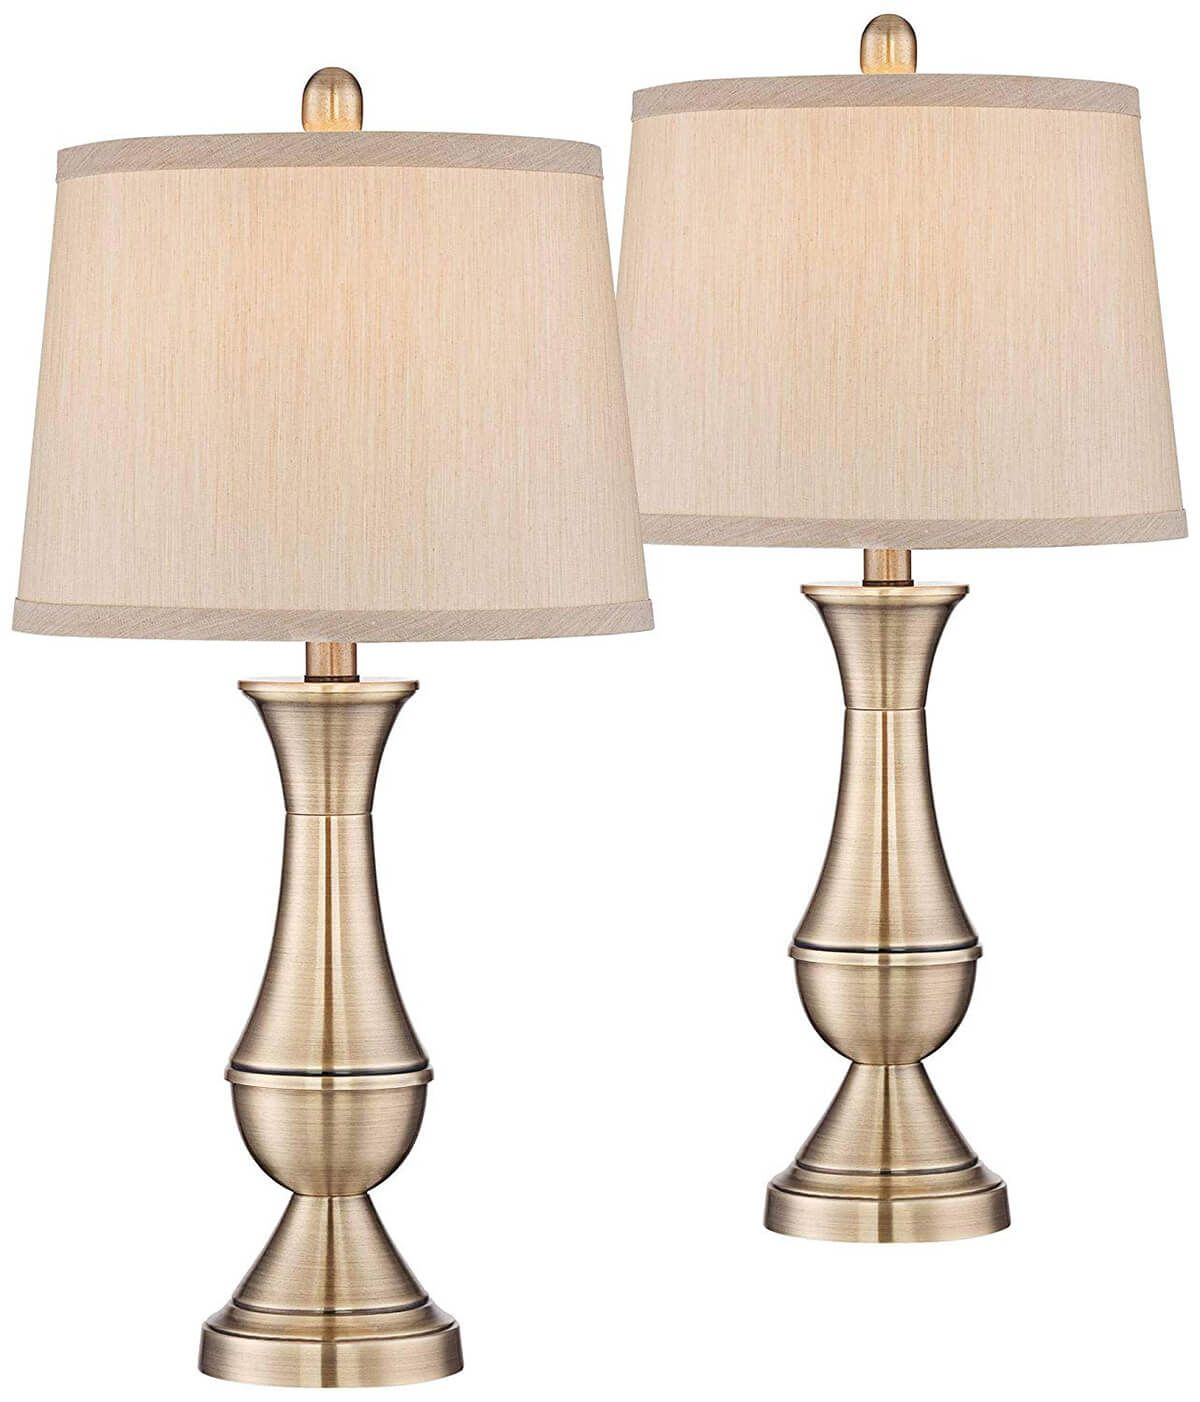 Set of Two Traditional Table Lamps | Table lamp, Metal table